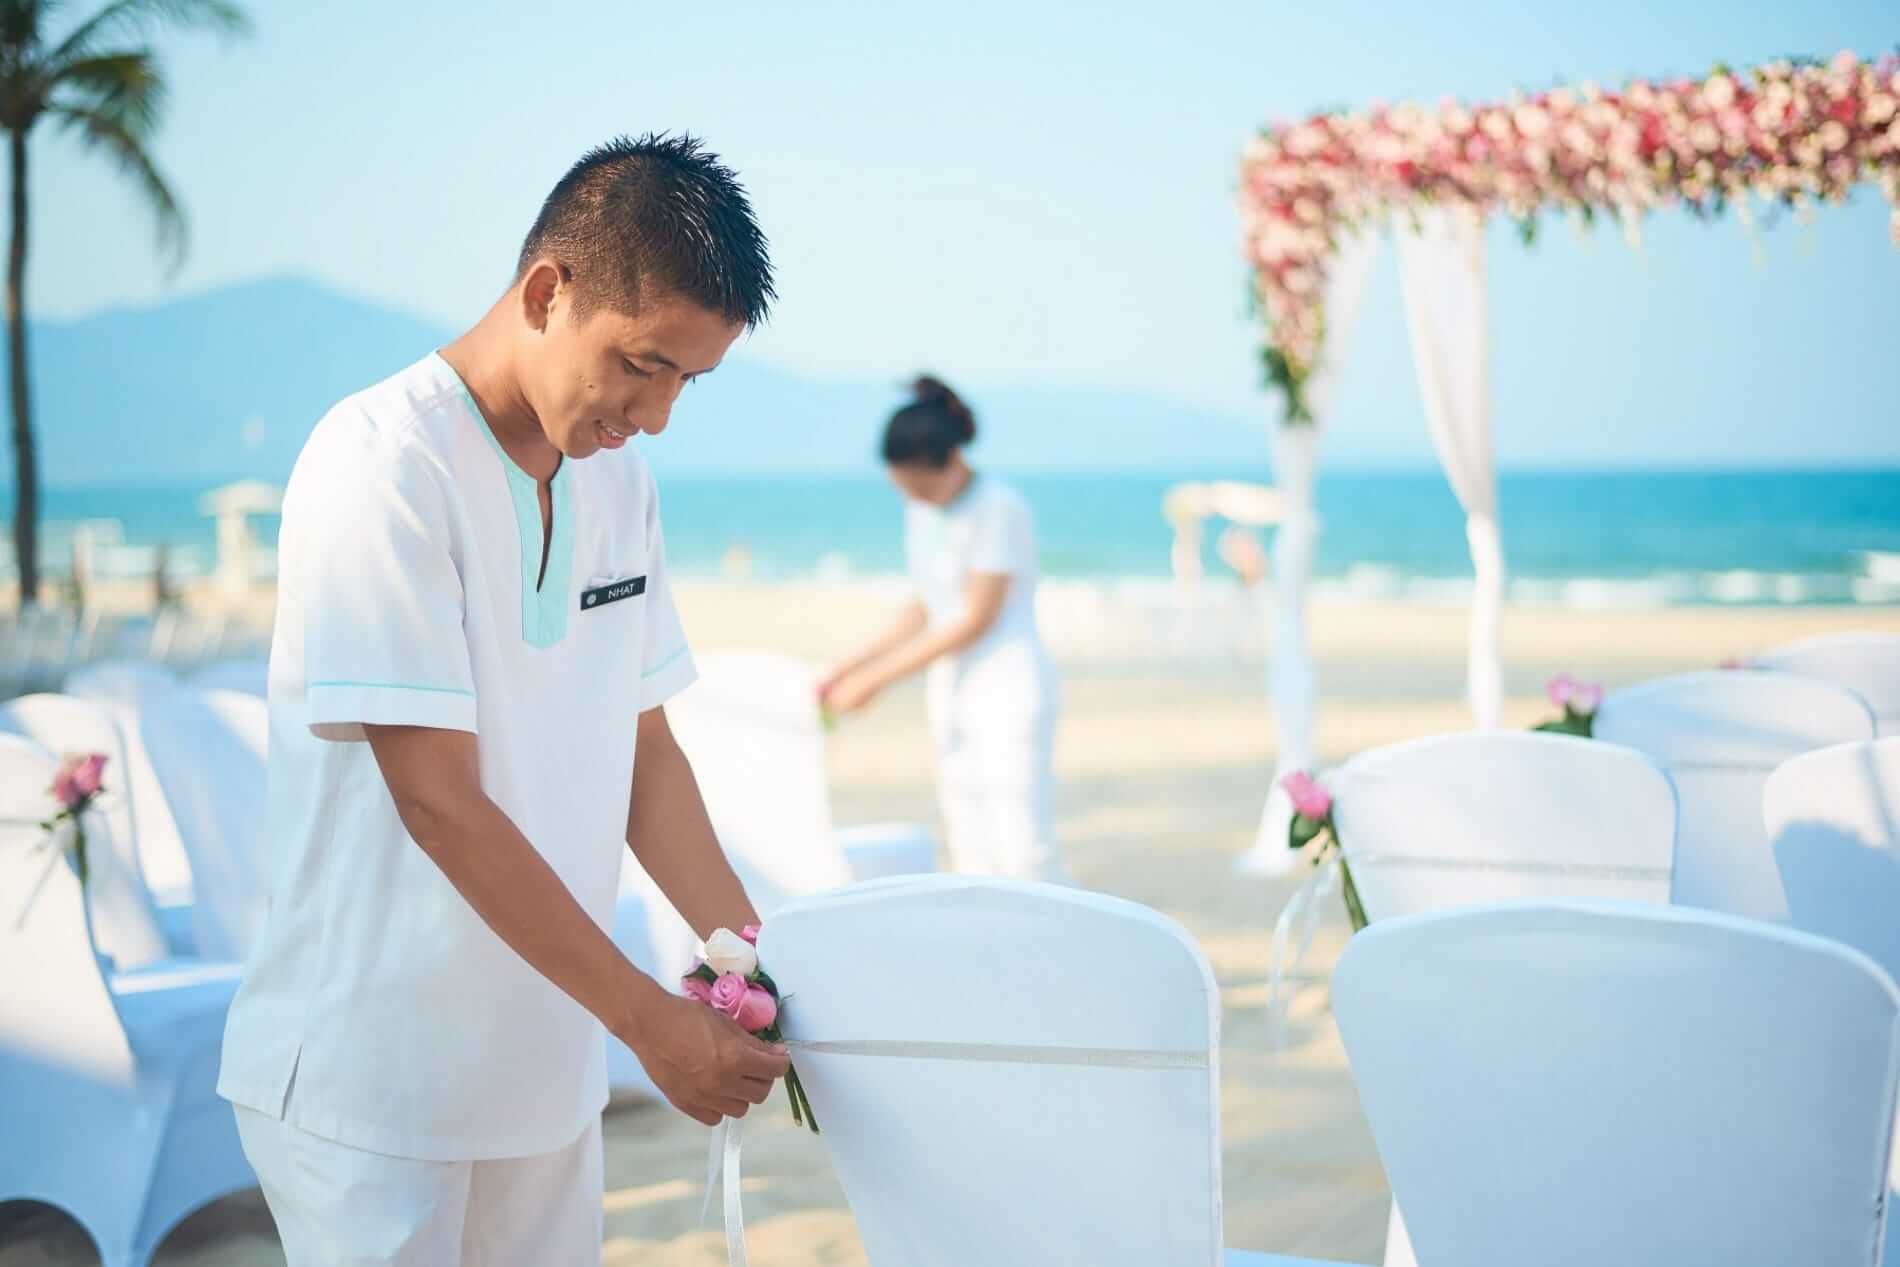 Staff prepares for a wedding at the beach